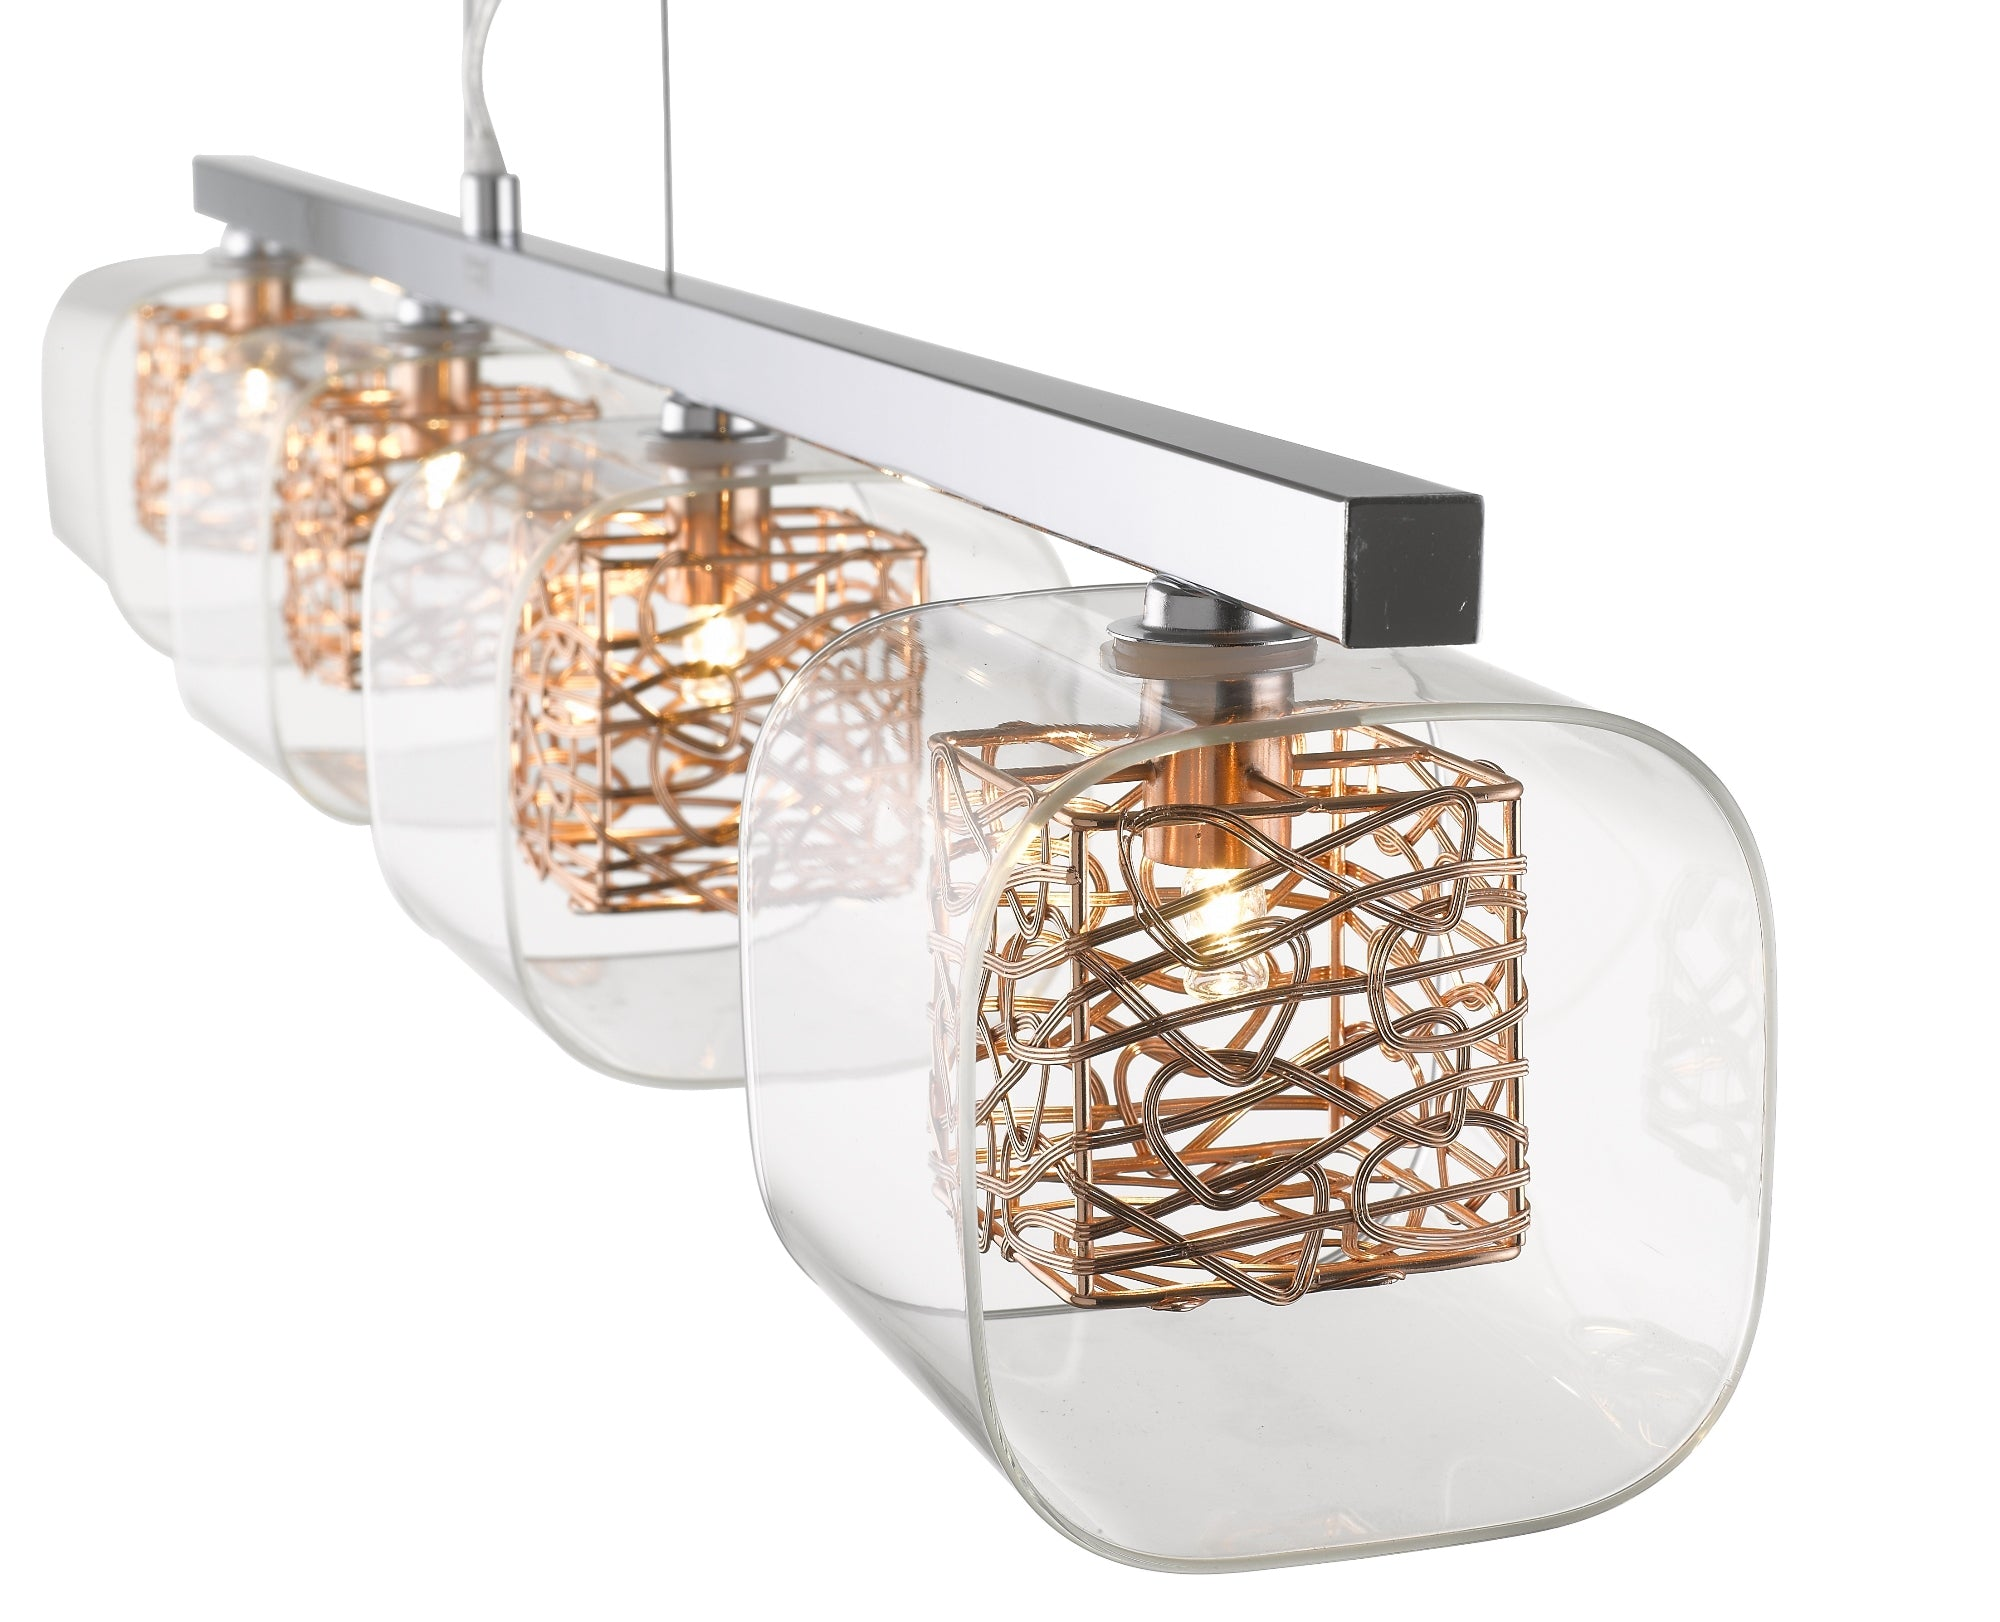 Lawson 4 Light Bar Pendant - Chrome or Copper